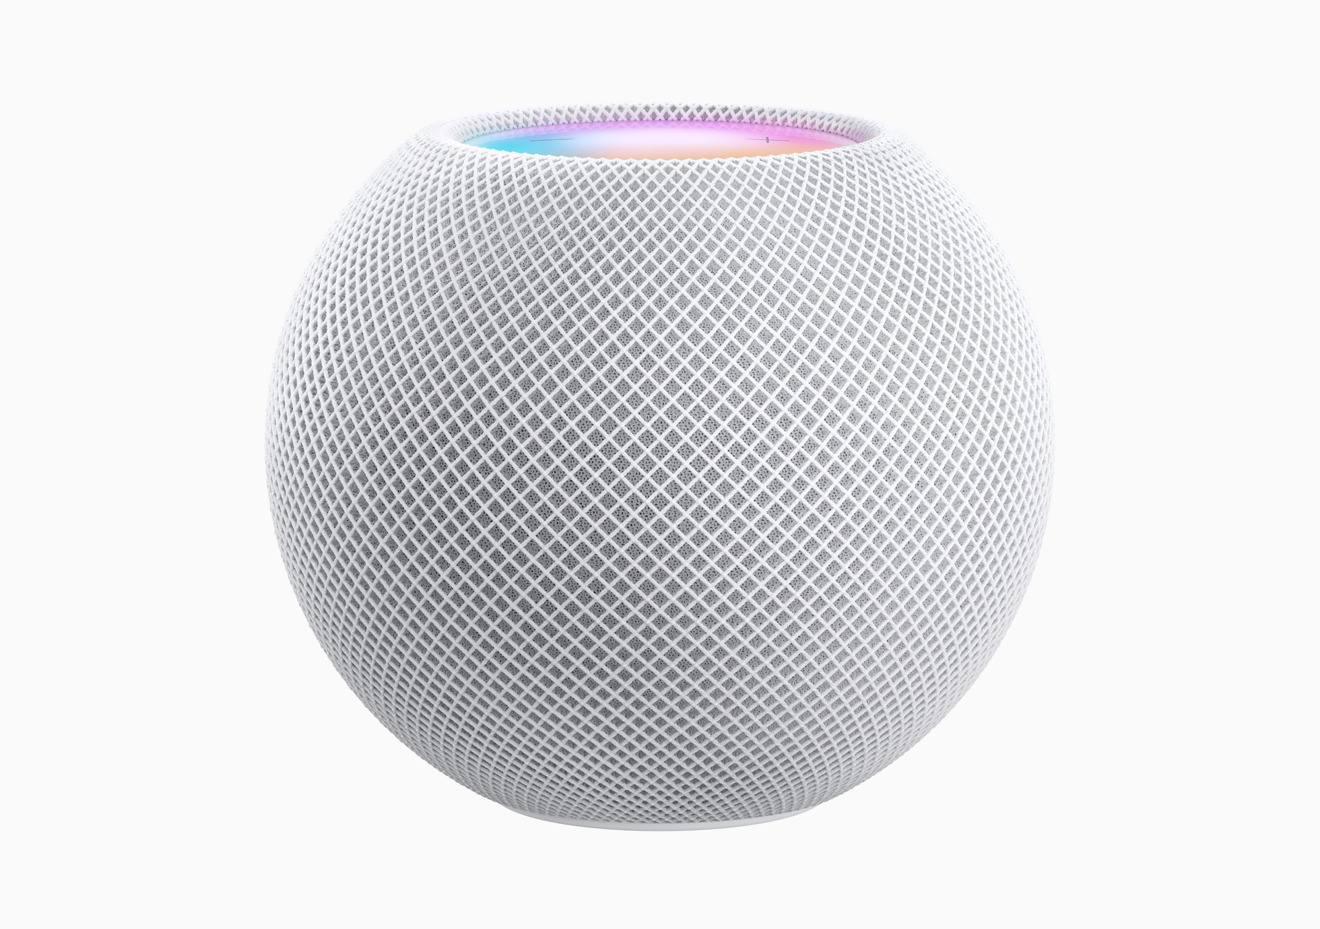 The HomePod mini is spherical, with two cutouts for the screen and to stop it rolling away.